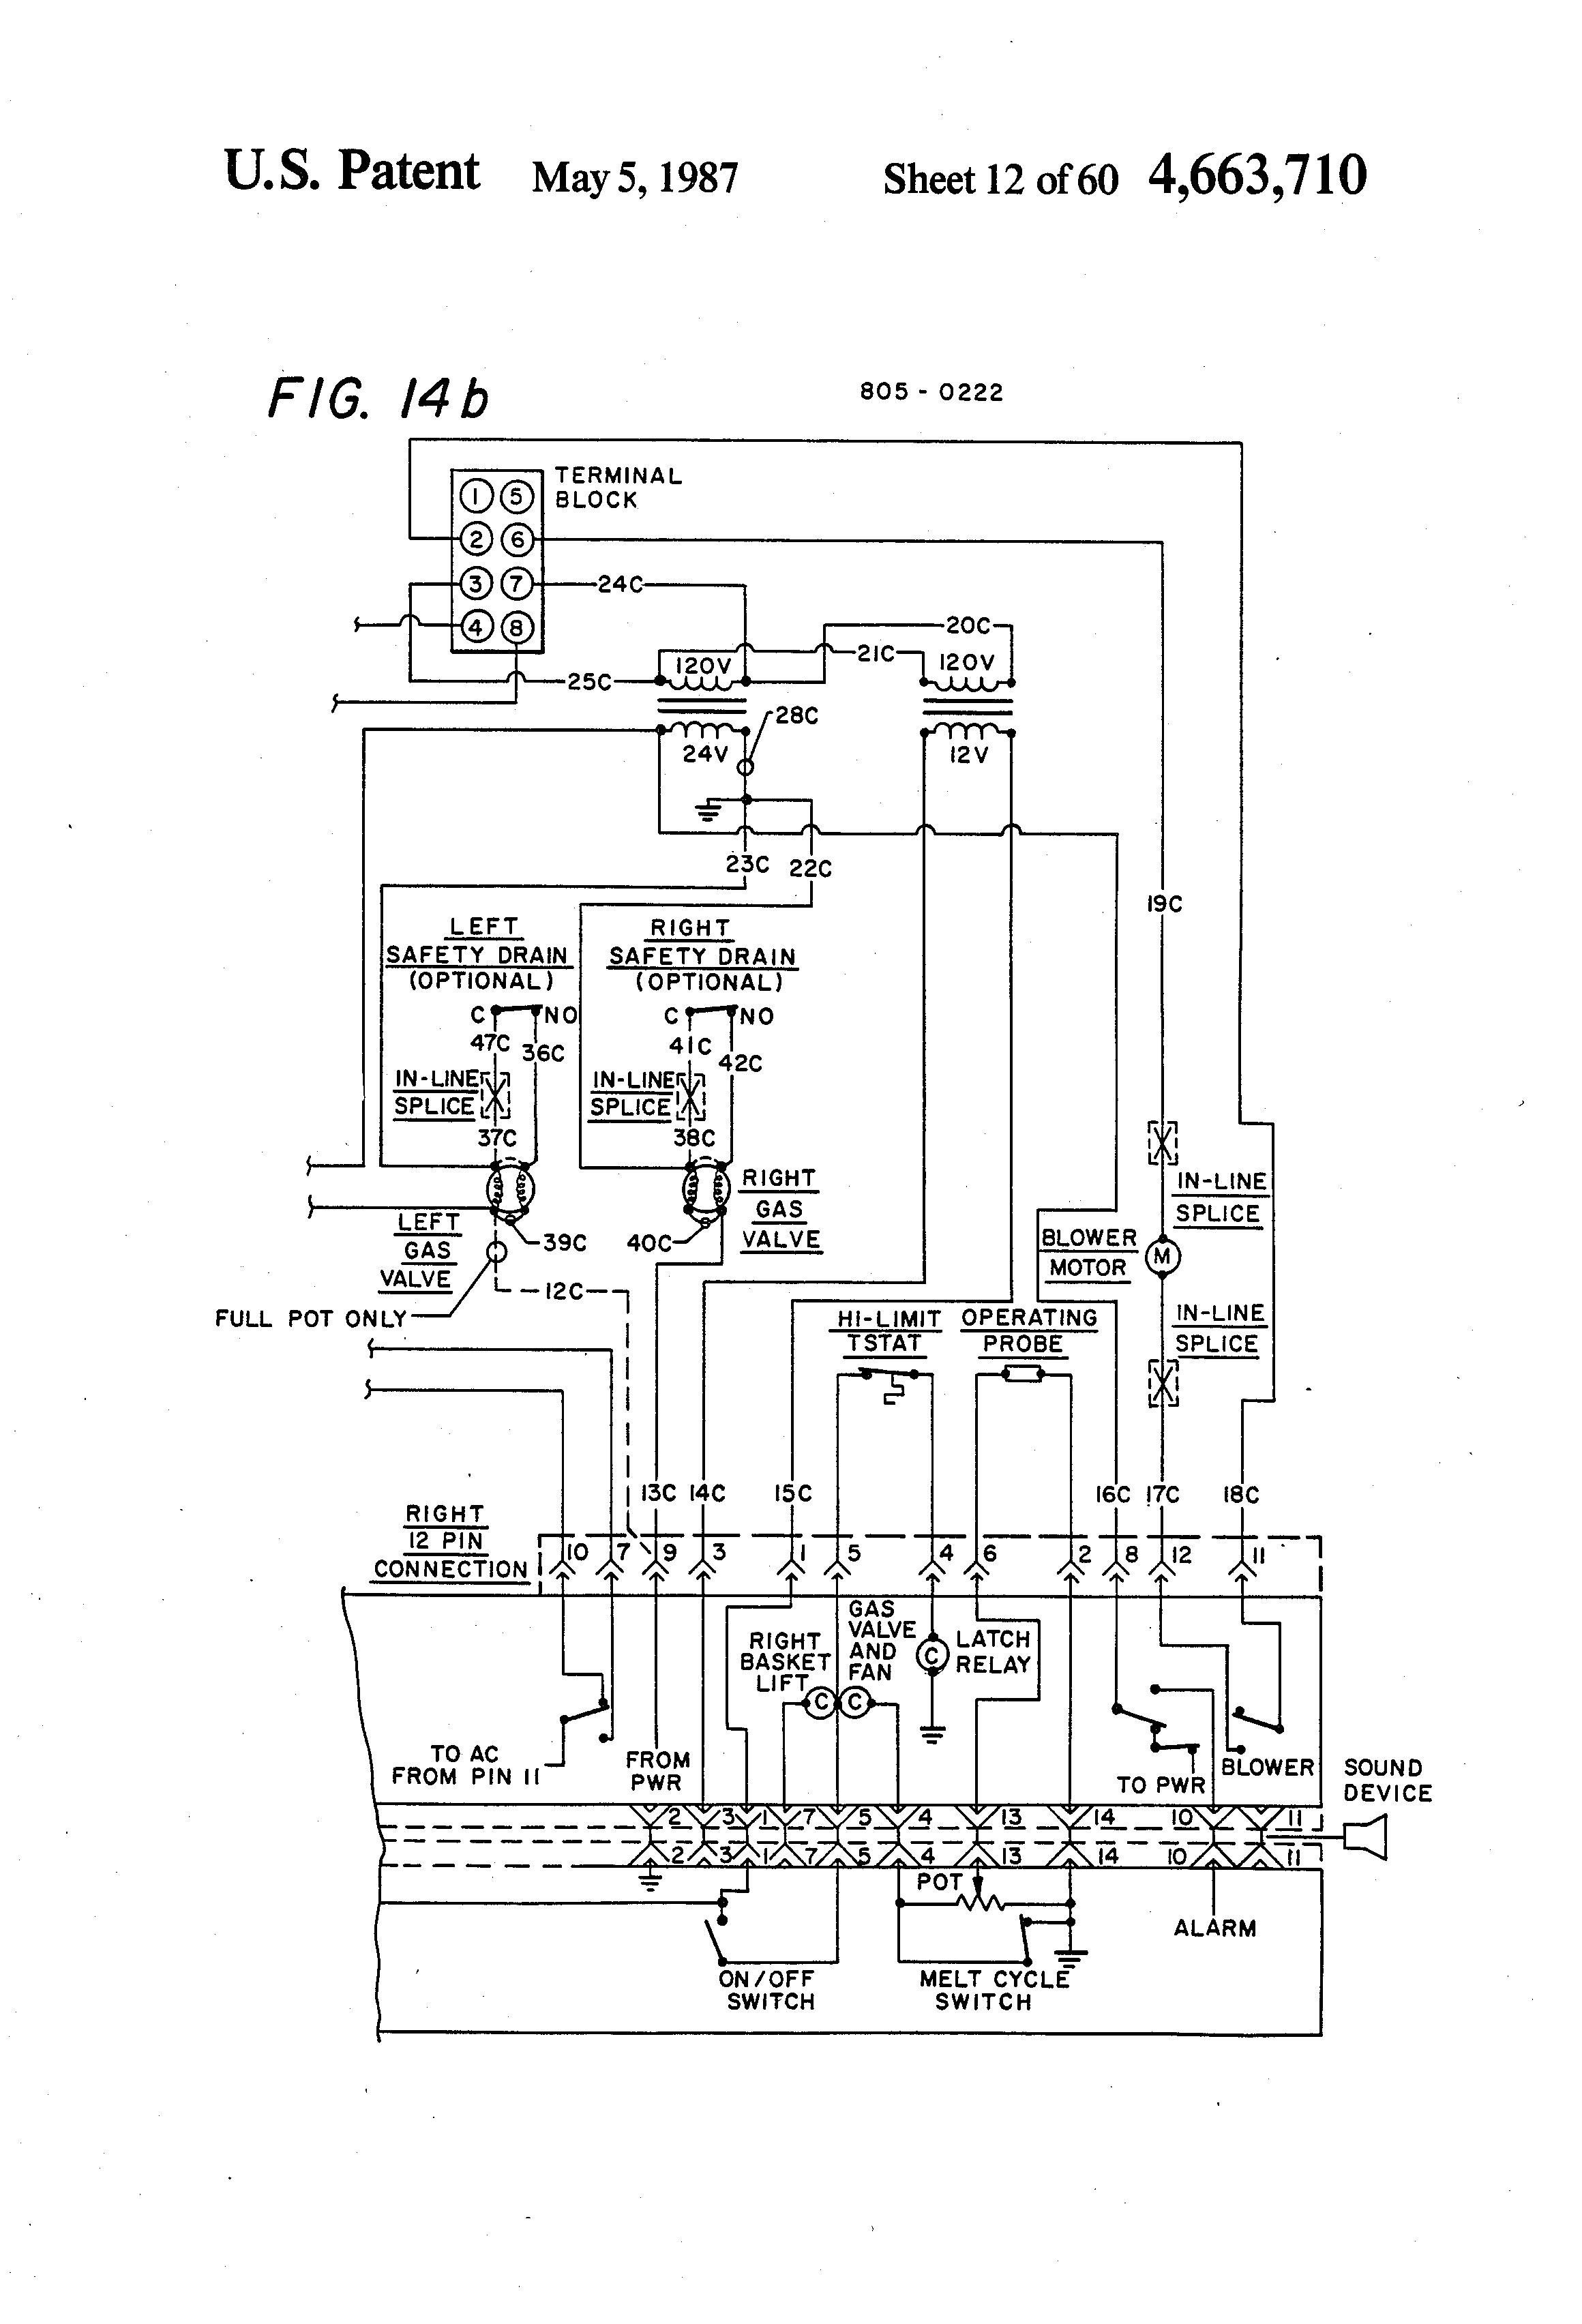 imperial deep fryer wiring diagram Download-Imperial Deep Fryer Wiring Diagram Unique Frymaster Fryer Troubleshooting Gallery Free Troubleshooting 2-d